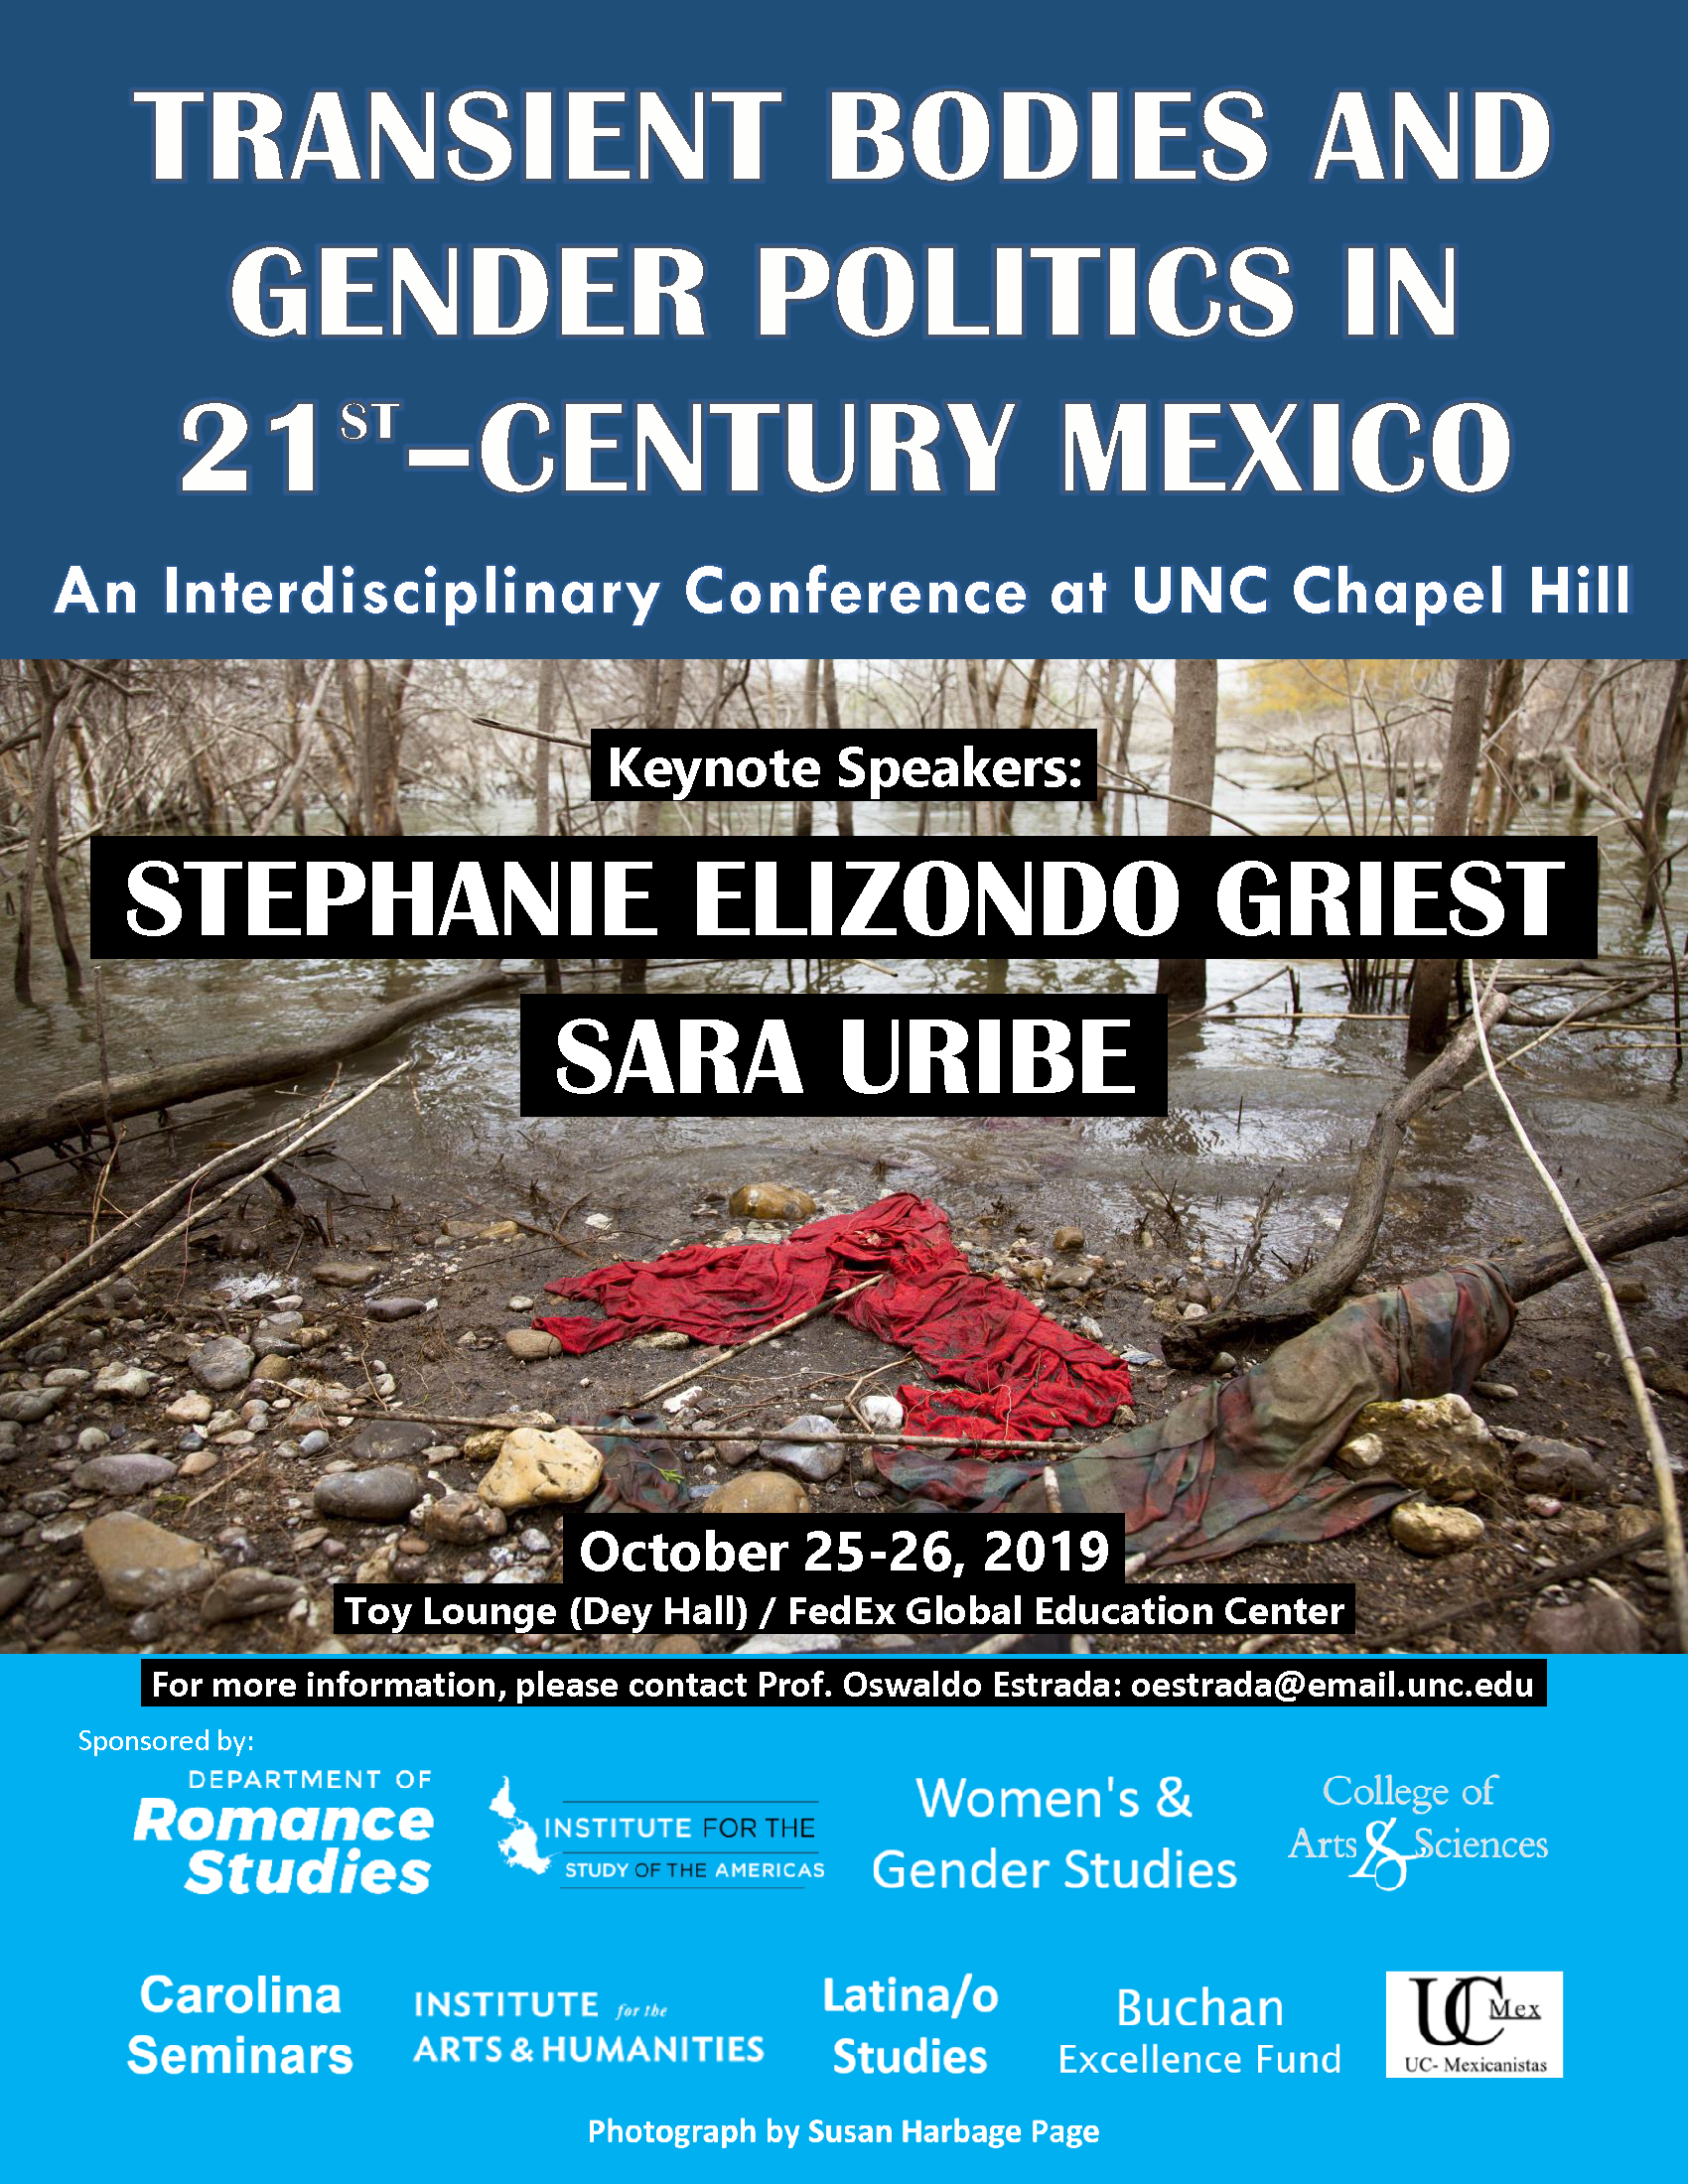 Transient Bodies and Gender Politics in 21st Century Mexico